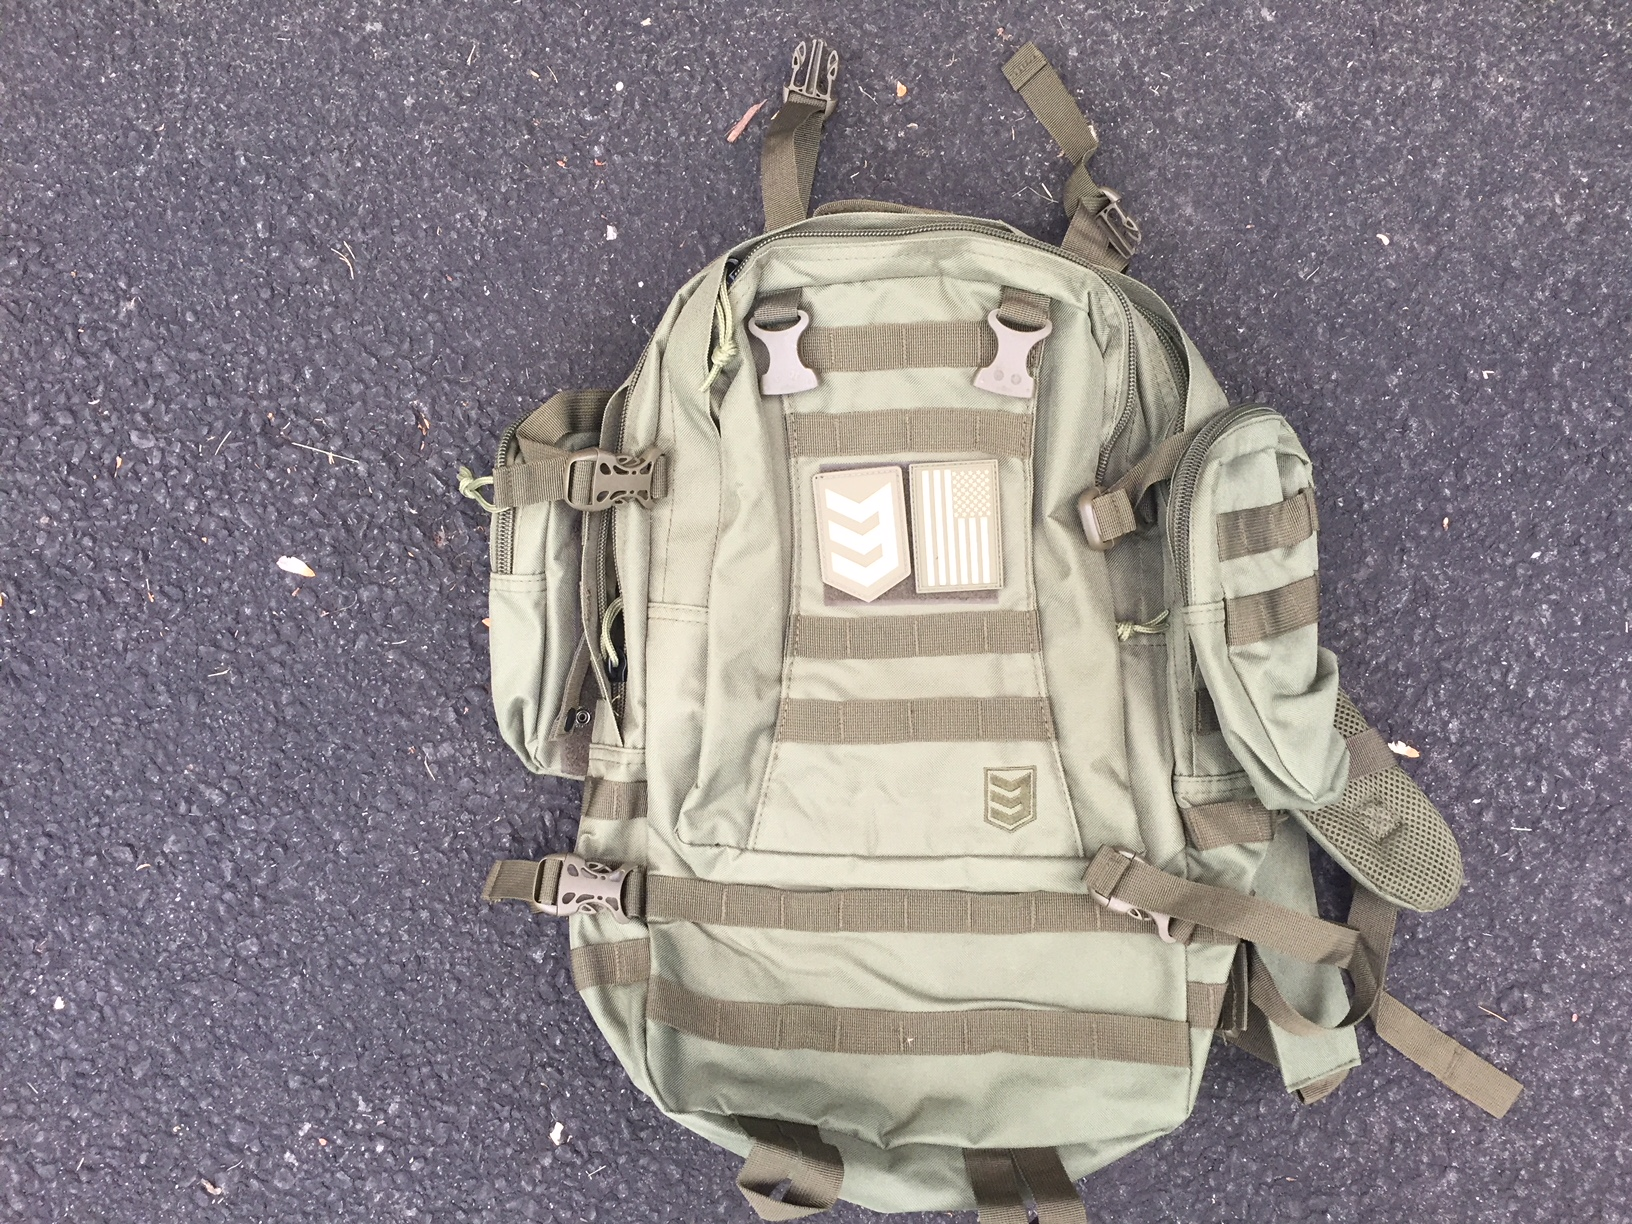 215155e09306 This pack is easily one of the toughest and most versatile military style  bugout bags on the market and let me tell you why.